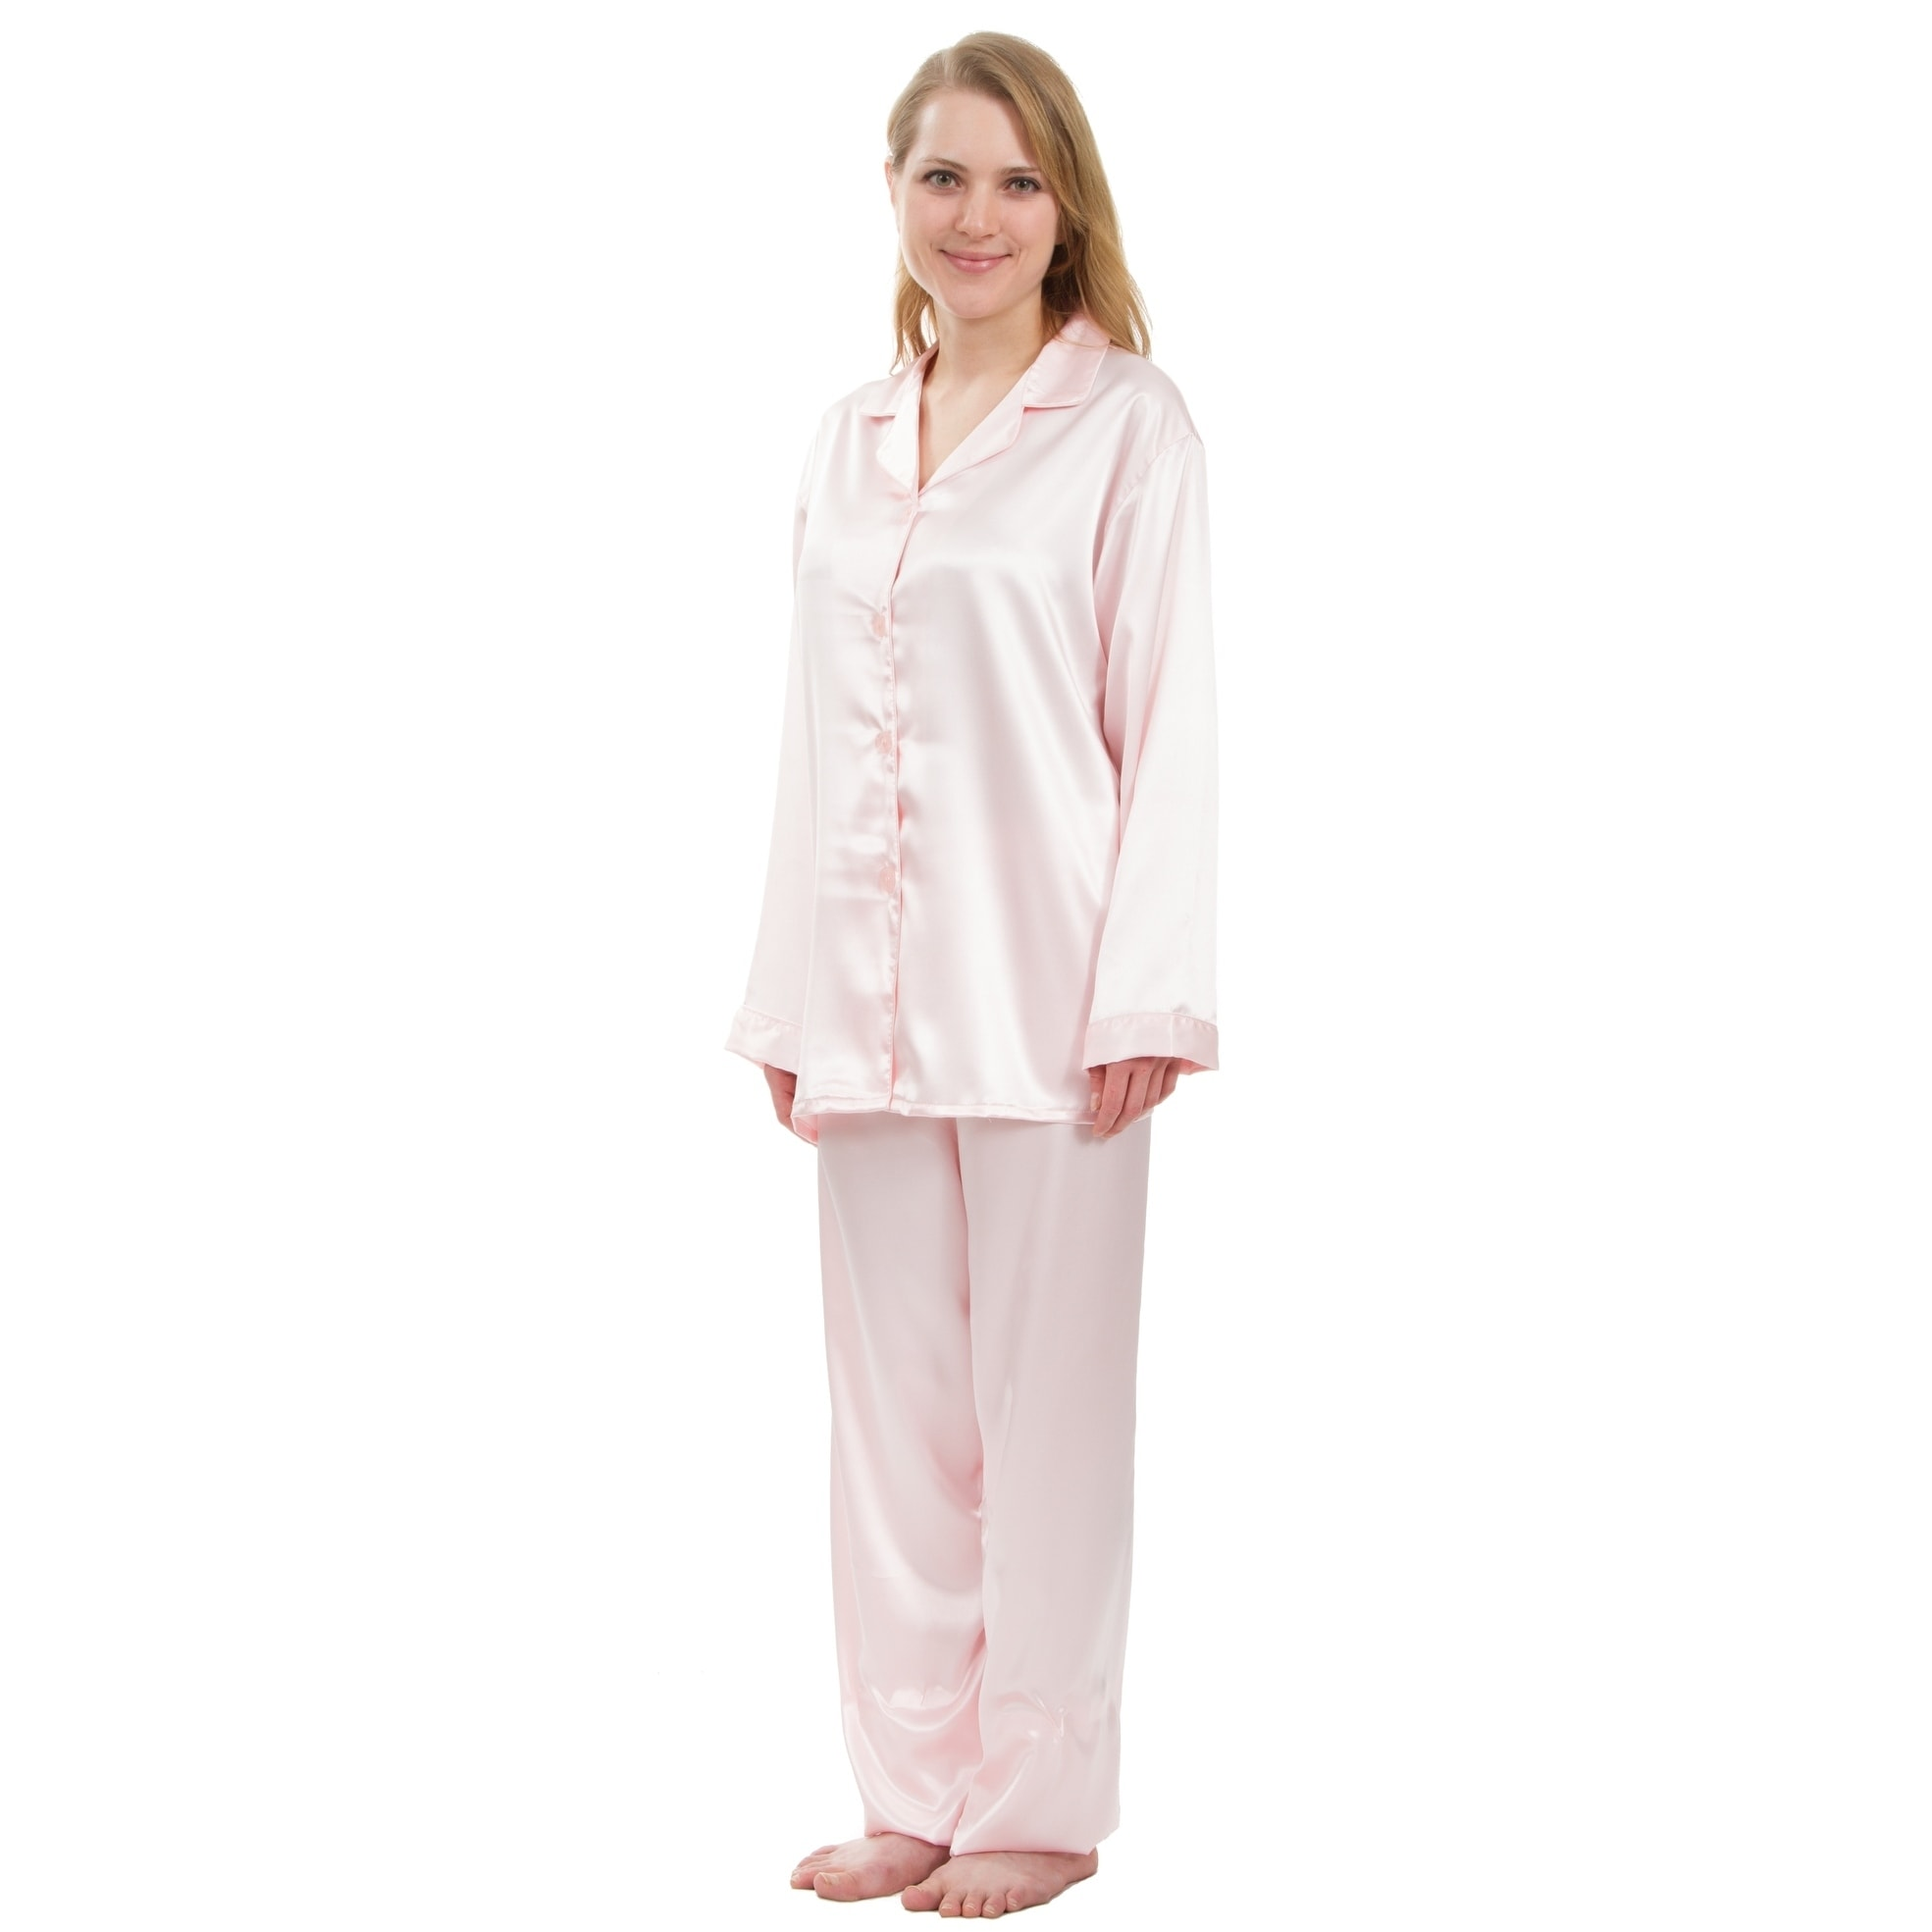 0699ad48e Shop Leisureland Classic Women s Stretch Satin Pajama Set - Free Shipping  On Orders Over  45 - Overstock - 18658572